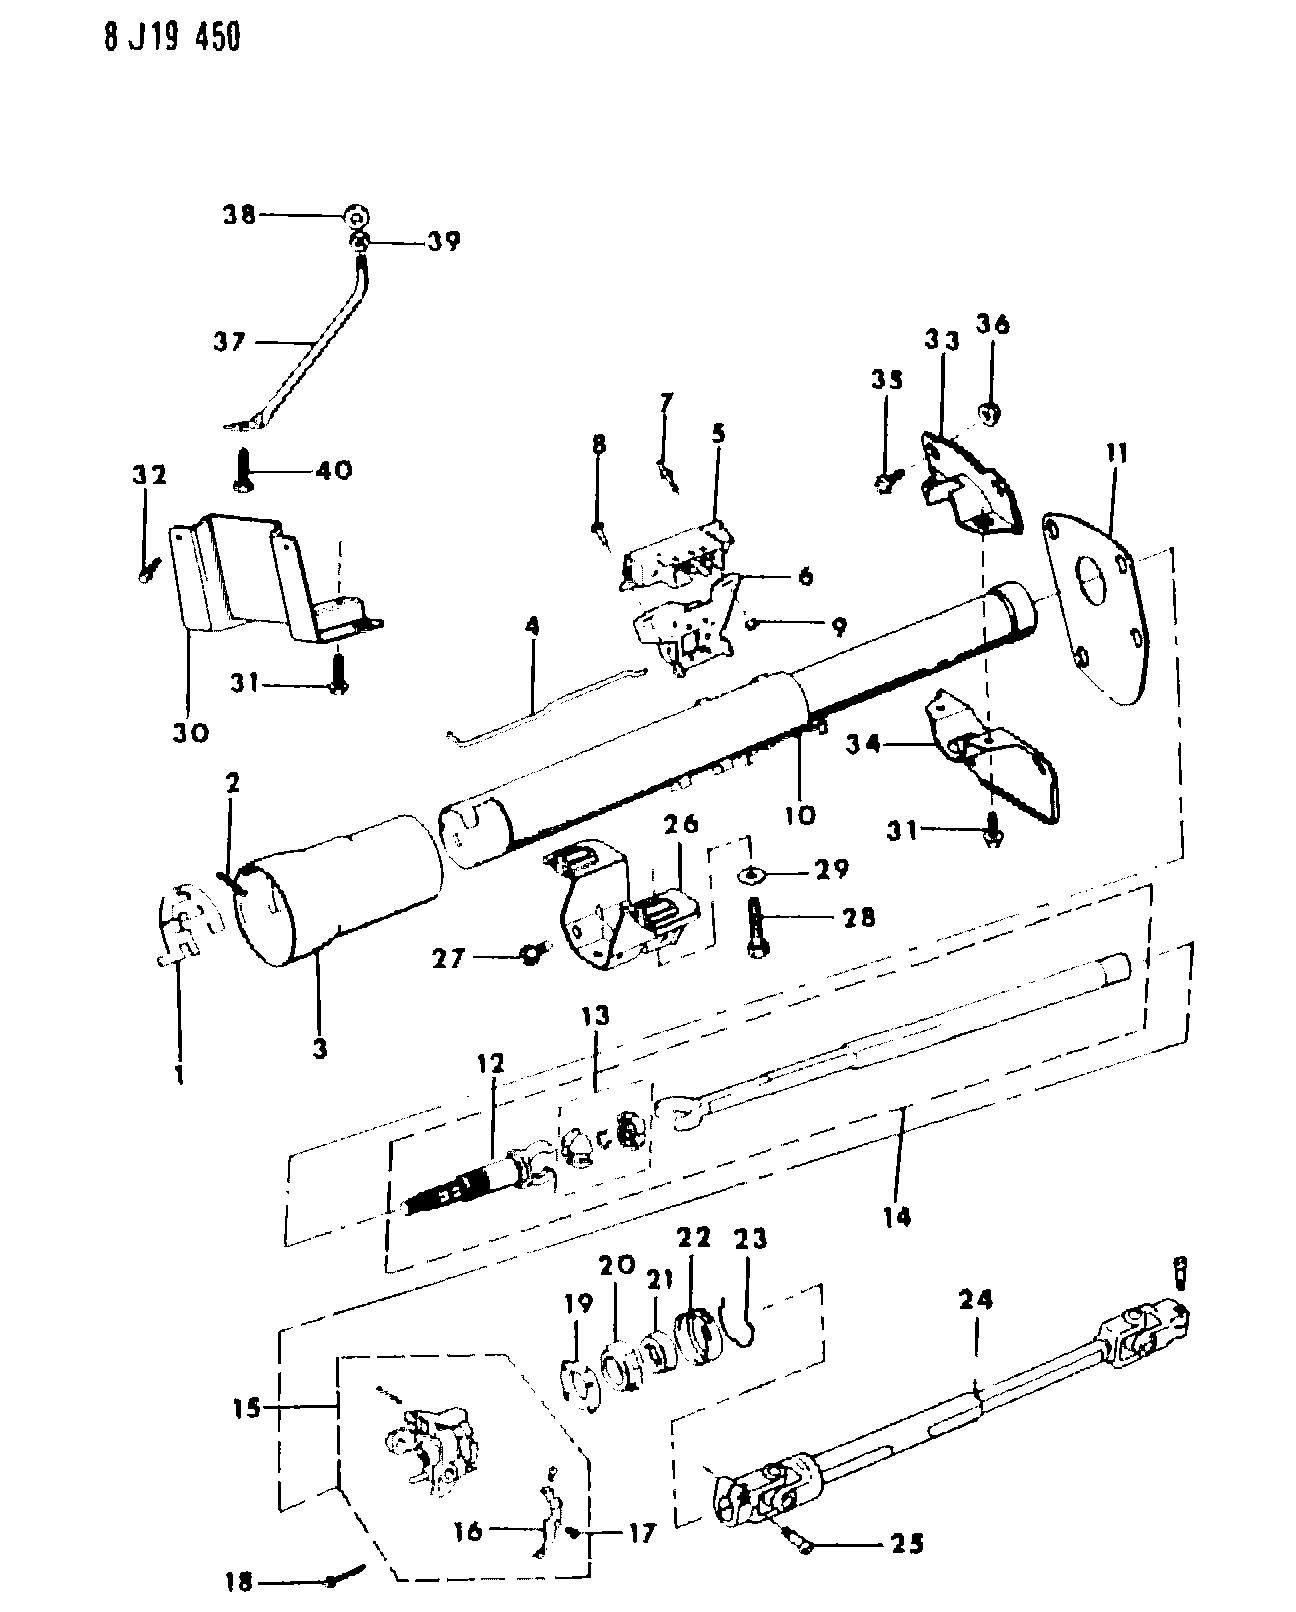 1989 dodge dakotum steering column diagram wiring diagram database Dodge Dakota Distributor chrysler 1989 j jeep 19 steering 10 10 housing steering column 1989 dodge dakotum steering column diagram